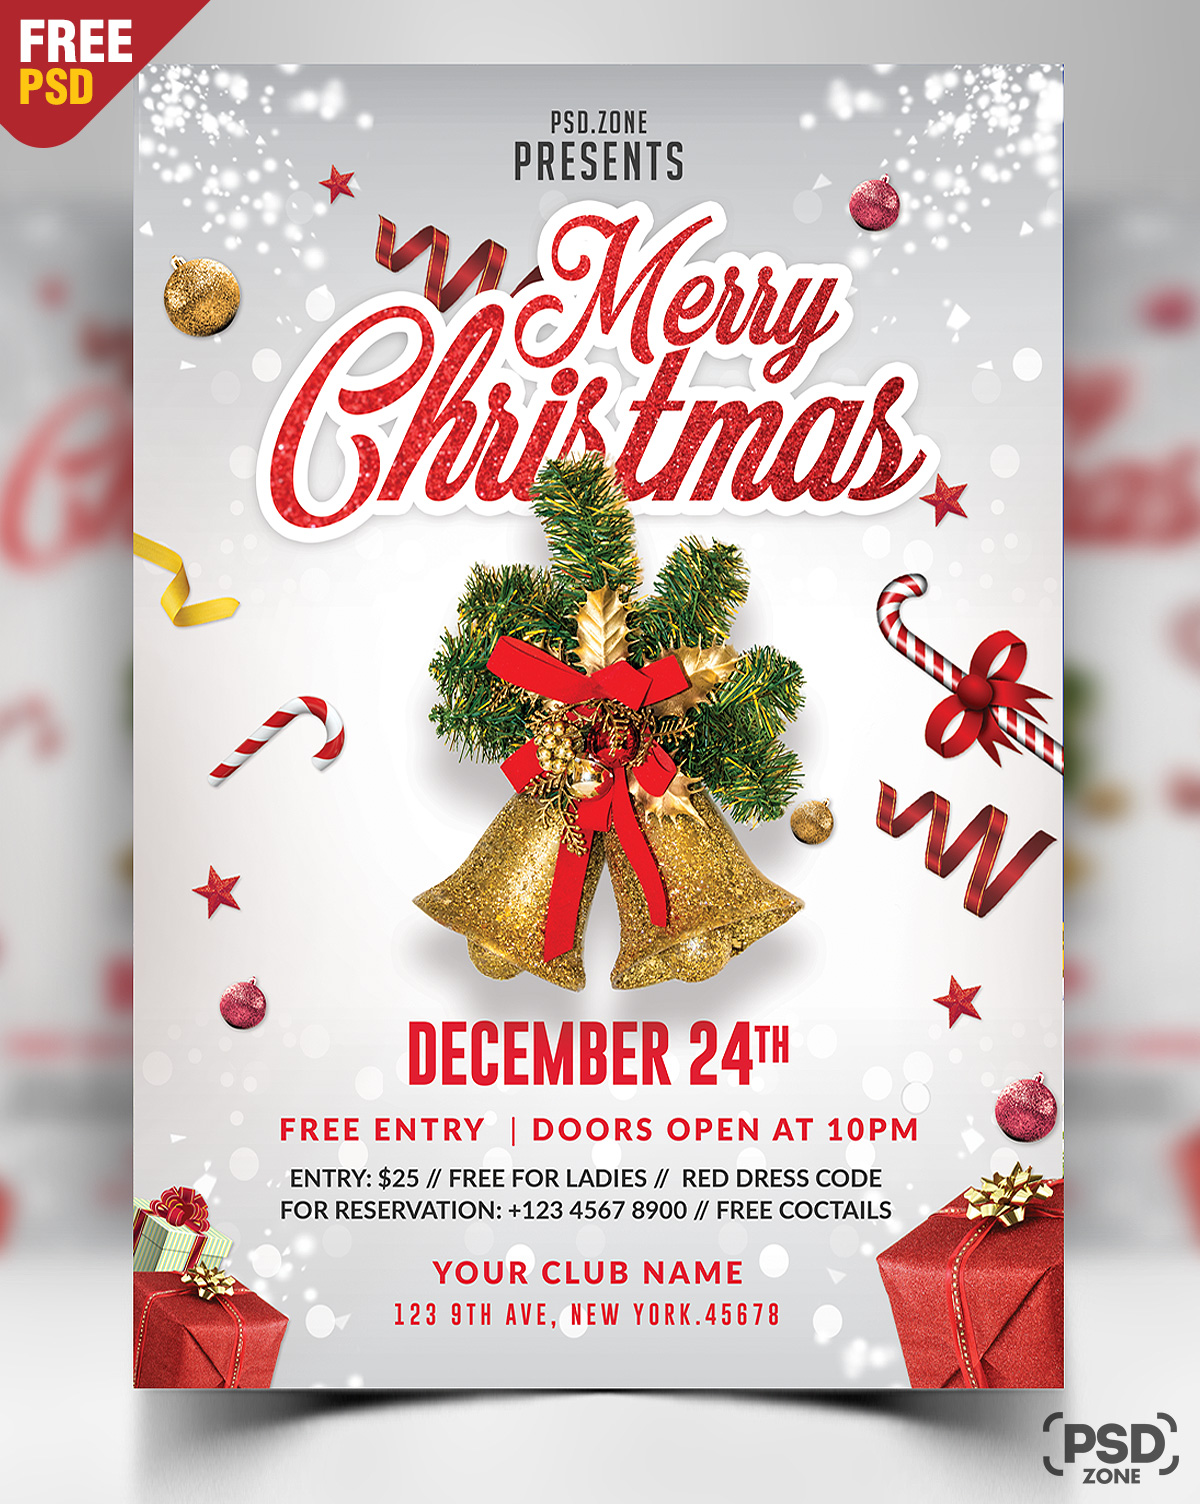 Merry Christmas Flyer Free PSD